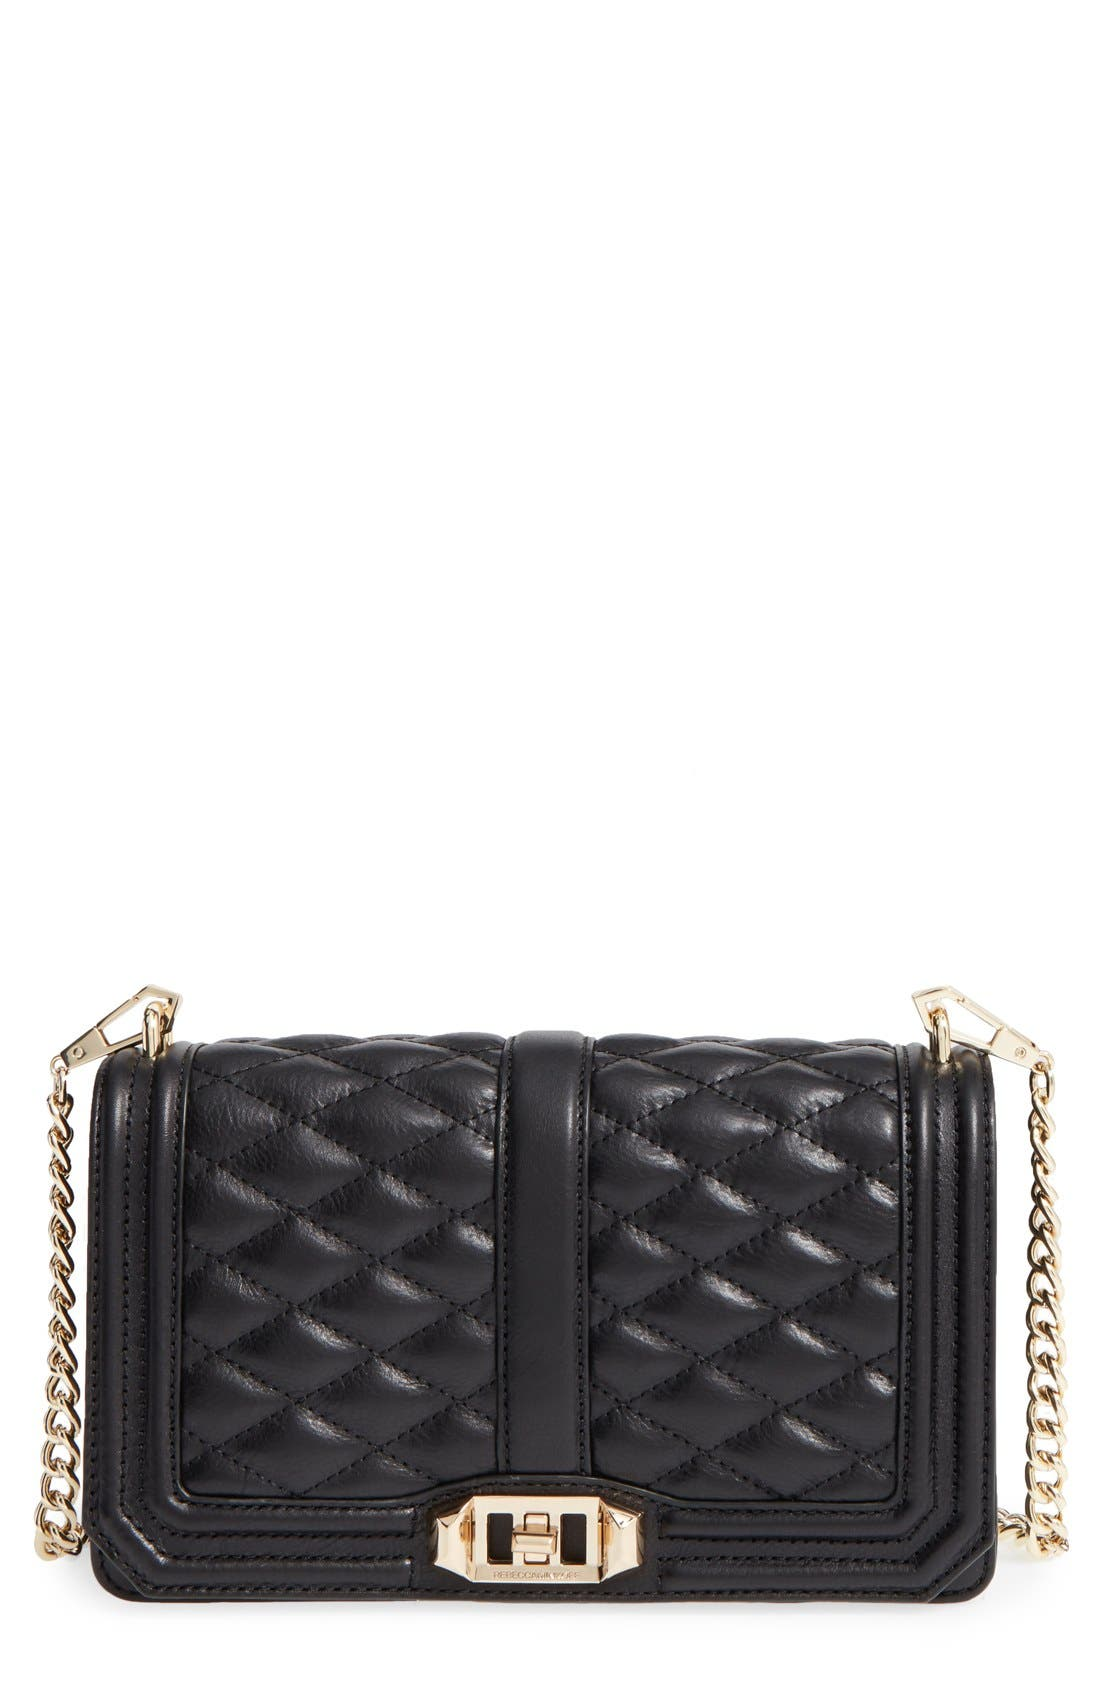 Main Image - Rebecca Minkoff Love Leather Crossbody Bag